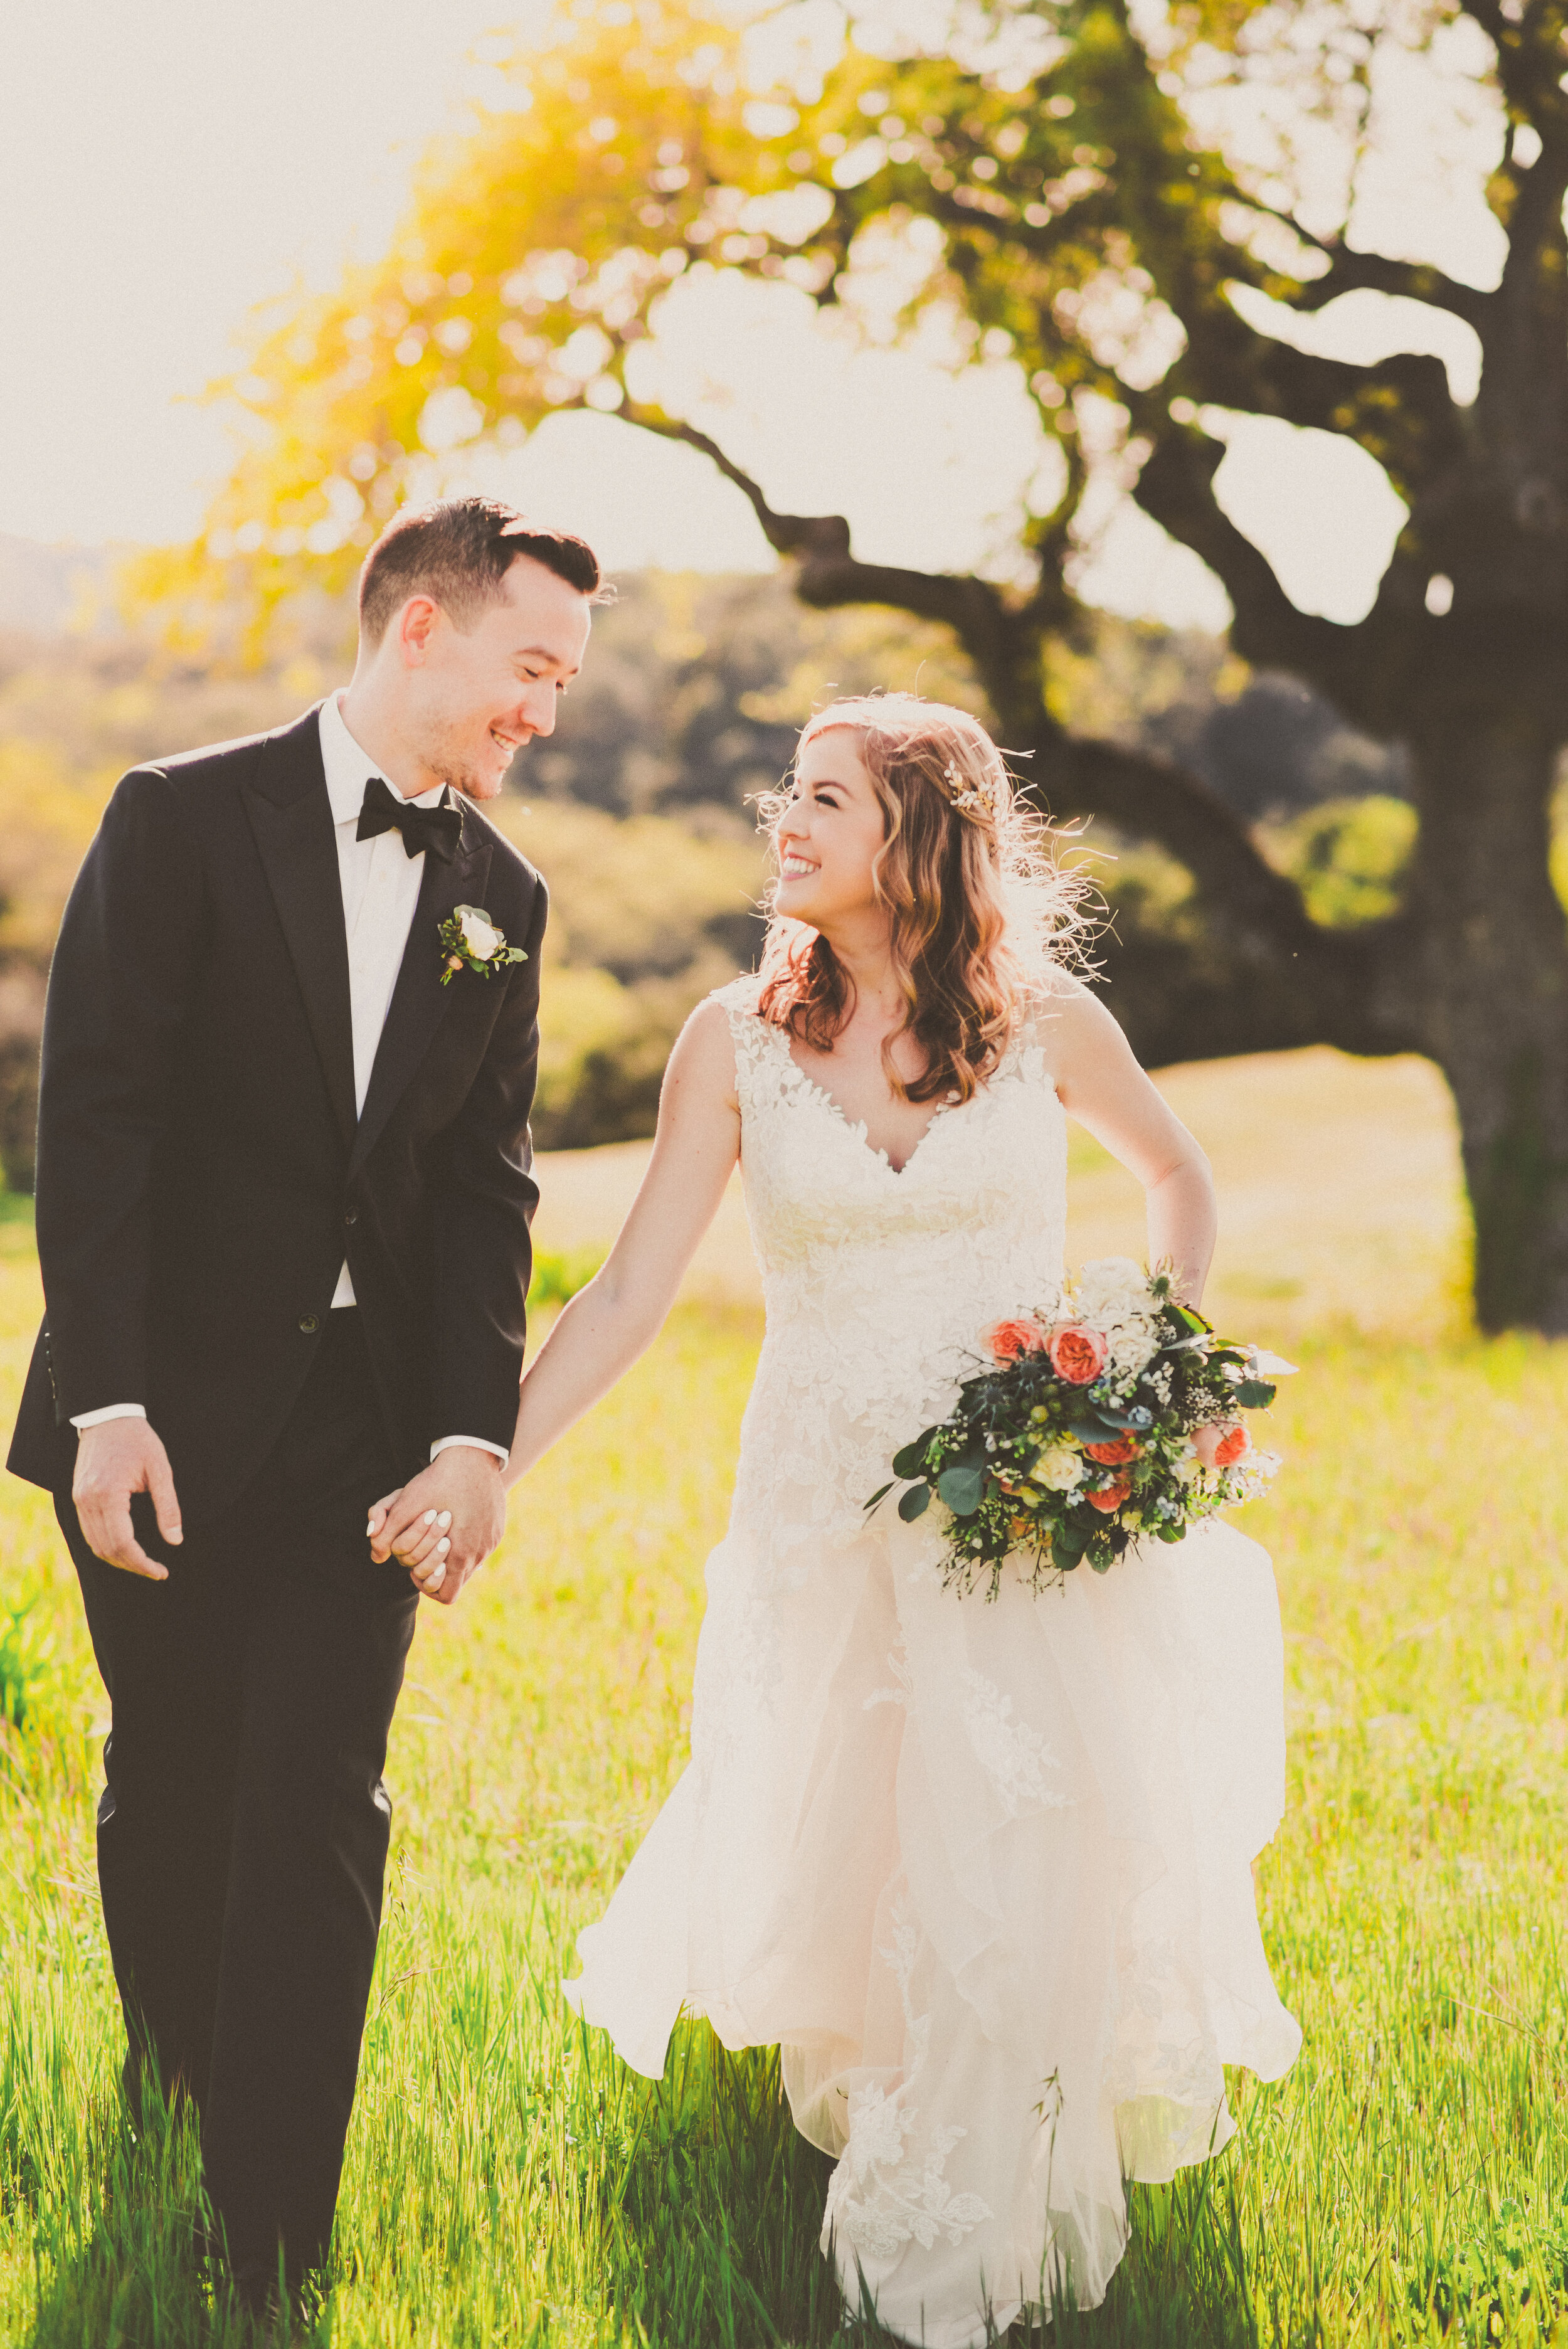 Kyle & Ariana - Bride & Groom-23.jpg